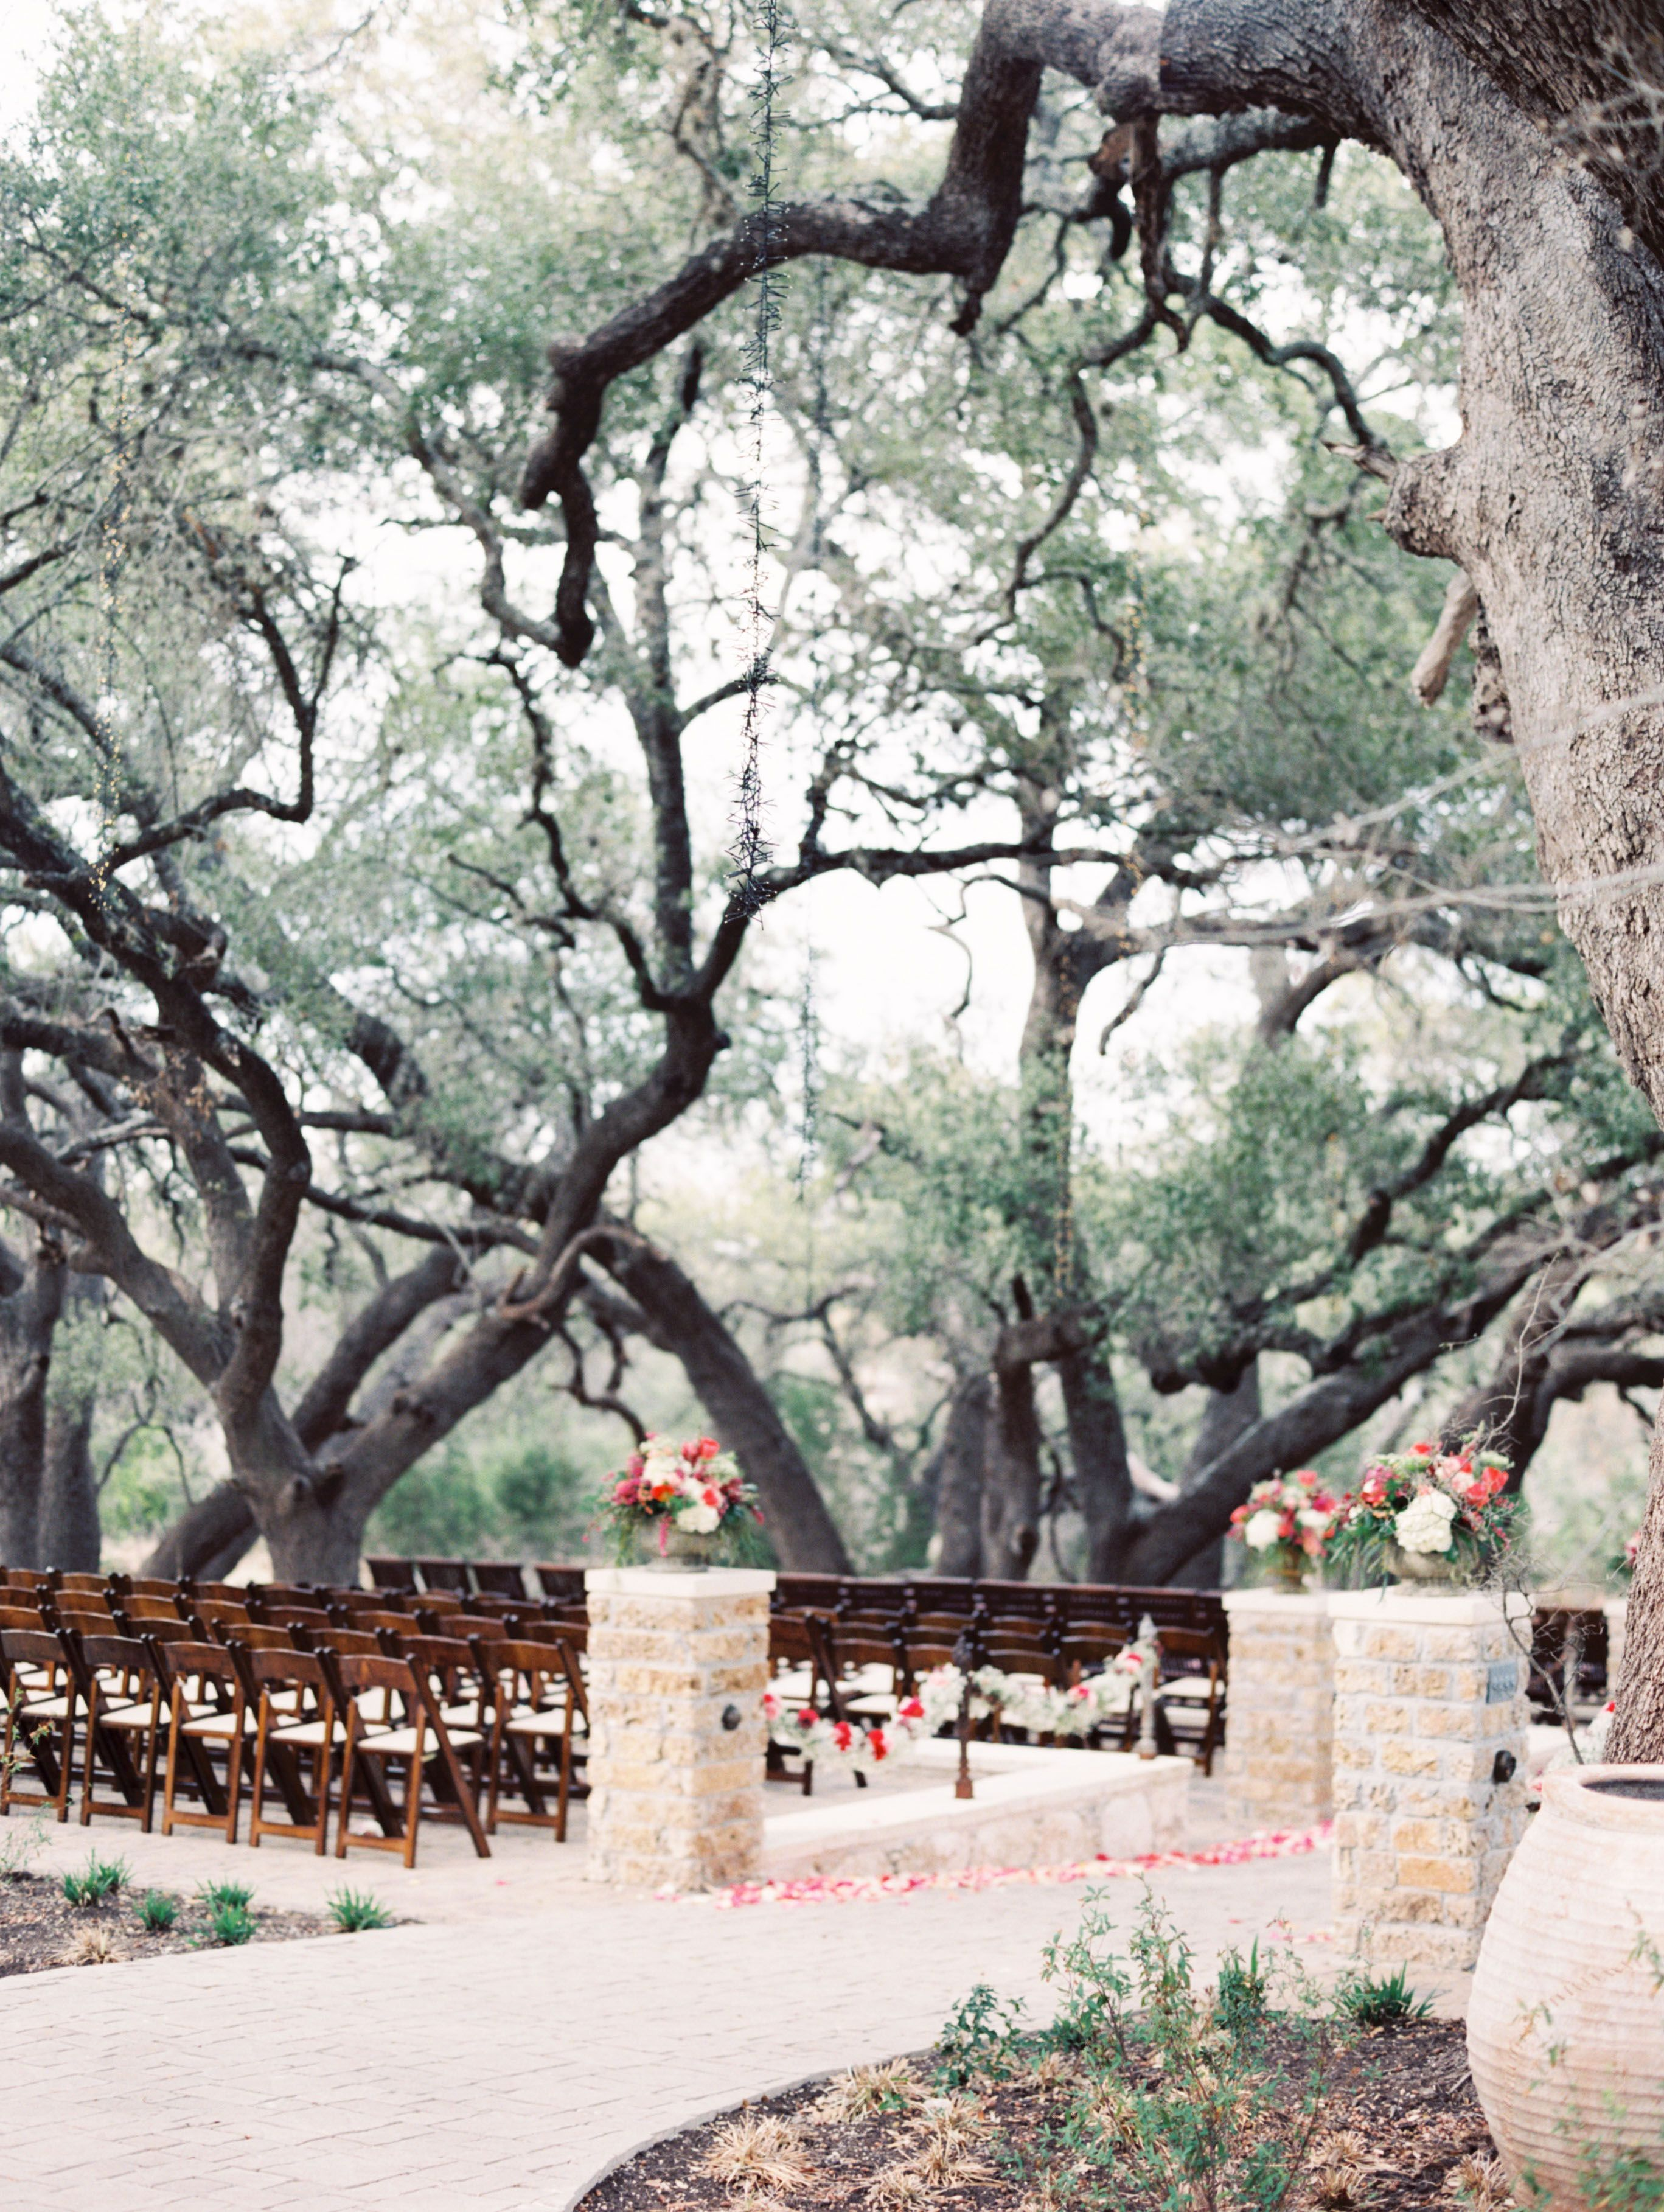 All snuggled in middle of the oak tree wedding ceremony